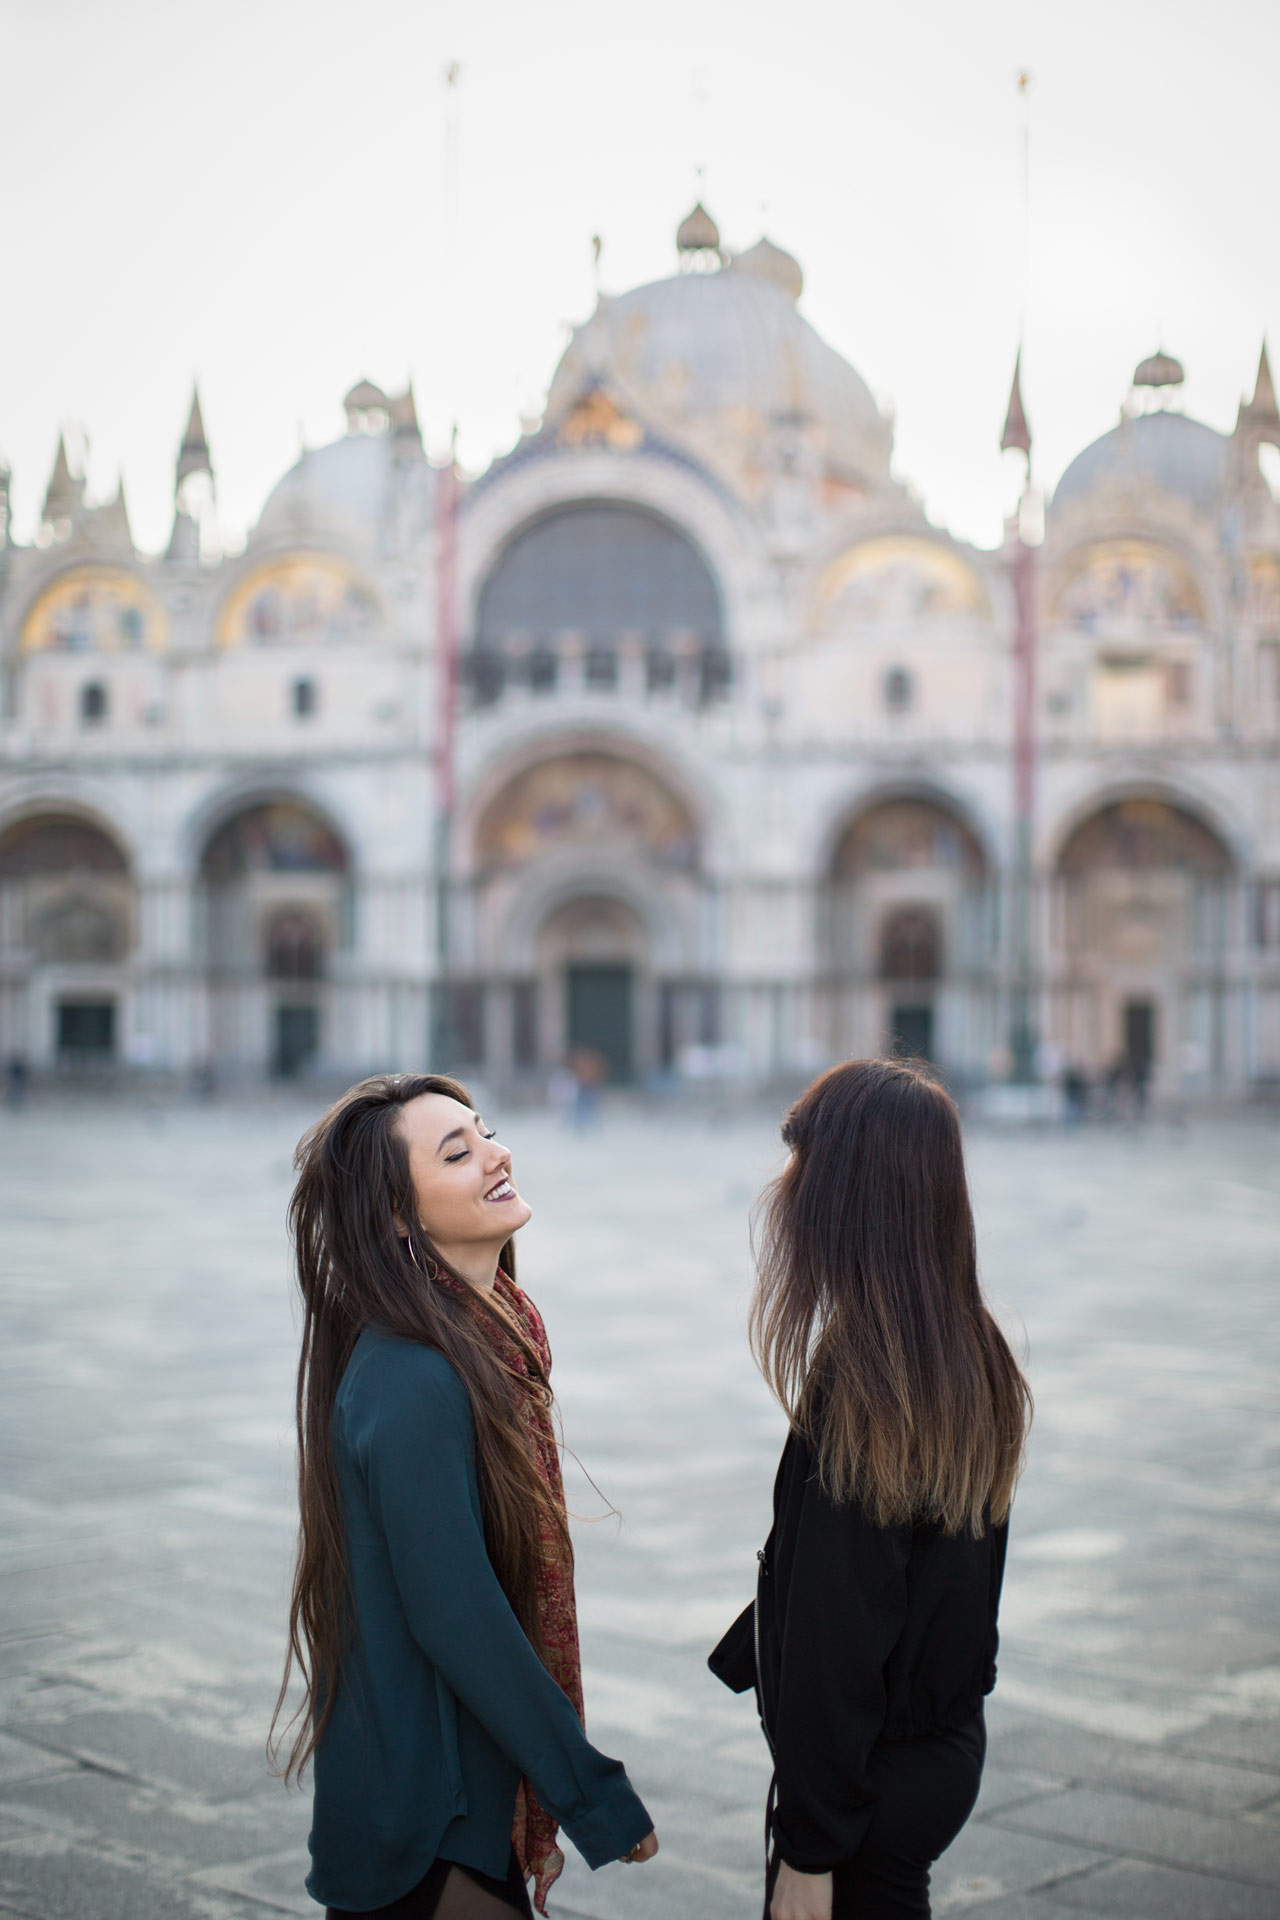 Ashley-Meagan-portrait-photo-shooting-sunrise-piazza-san-marco--basilica-Venezia-Venice-1